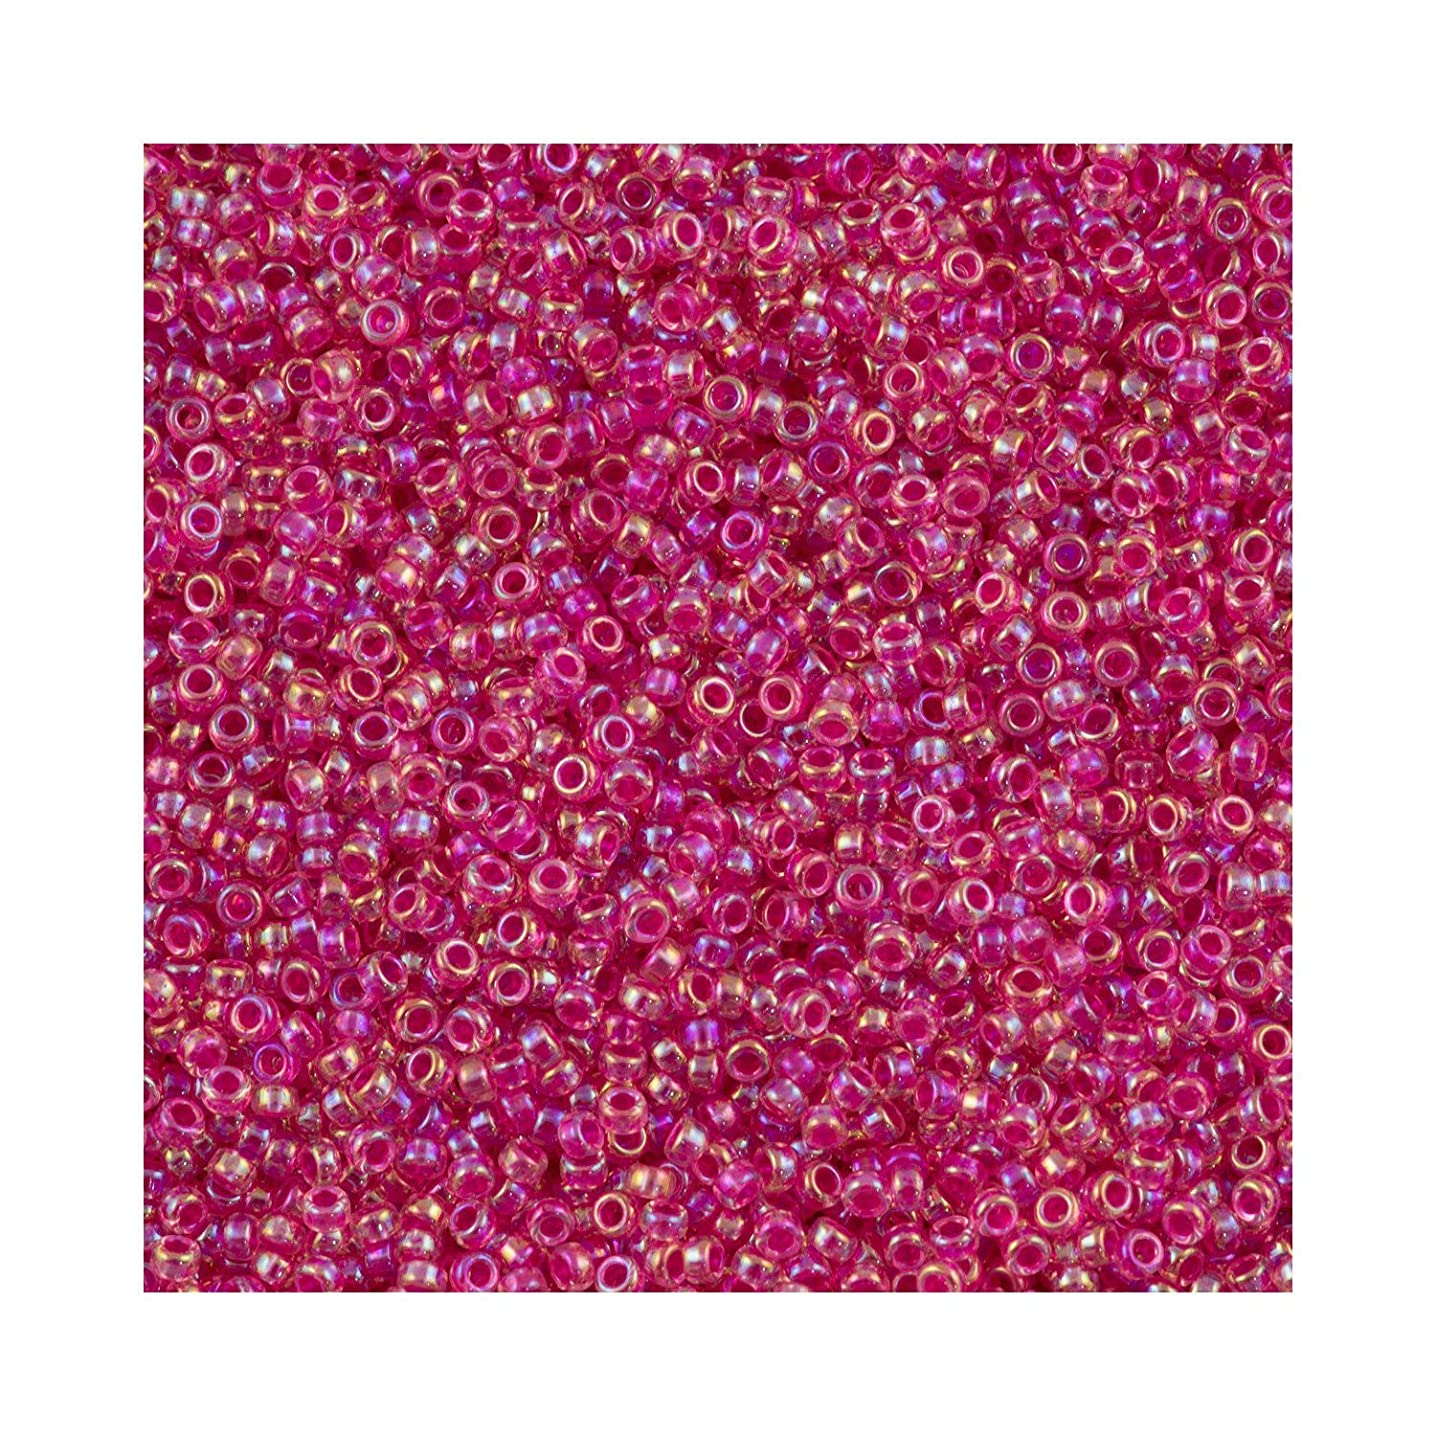 Fuchsia Lined Crystal ABMiyuki Japanese round rocailles glass seed beads 11/0 Approximately 24 gram 5 inch tube